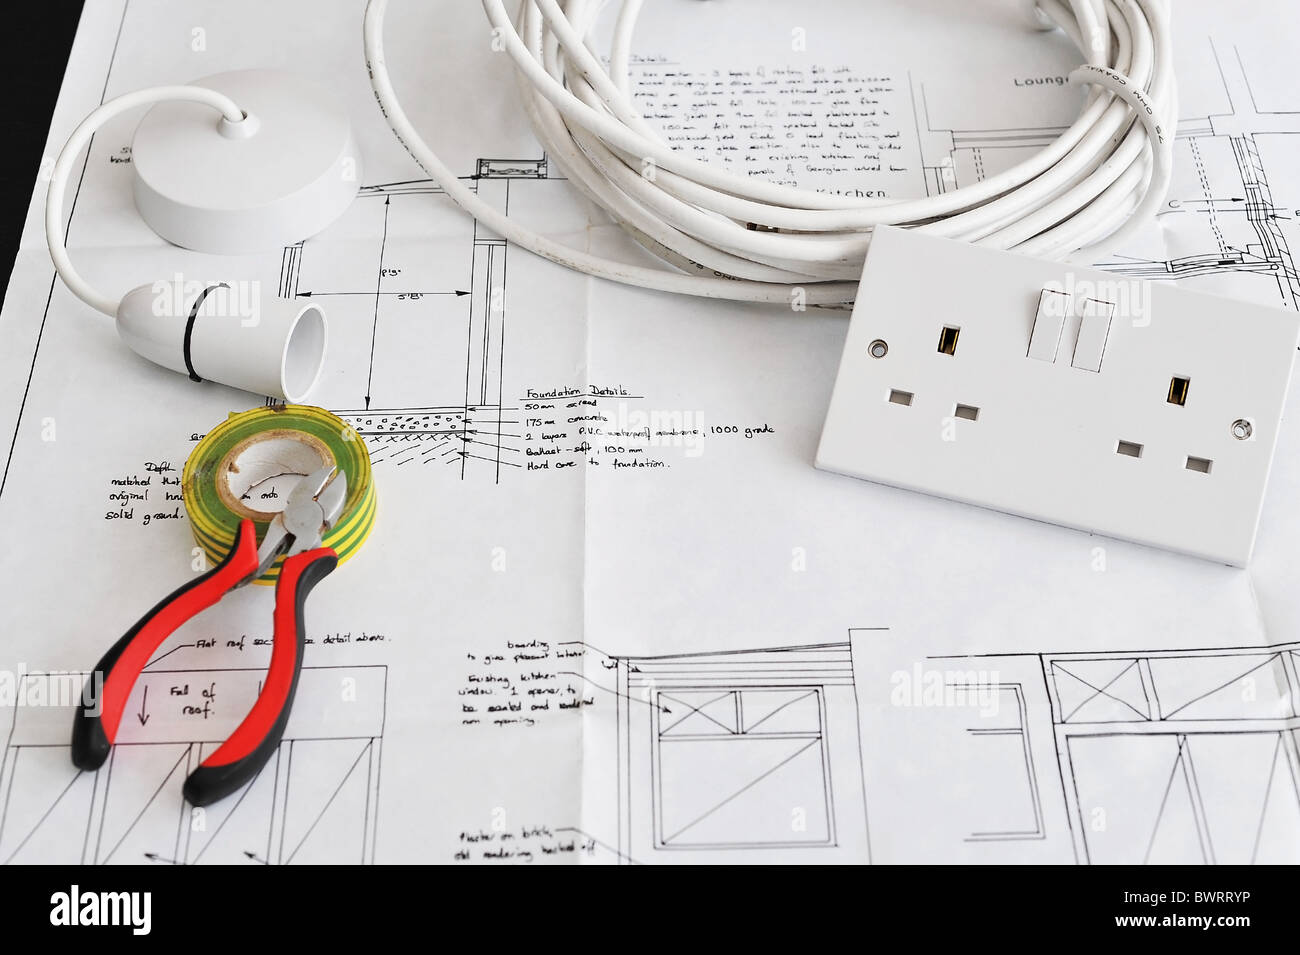 Electricity Diagram Stock Photos Images Glass On The Electronic Schematic Diagramideal Technology Background Home Extension Remodelling Blueprint Plans With Some Electrical Items Placed It Image